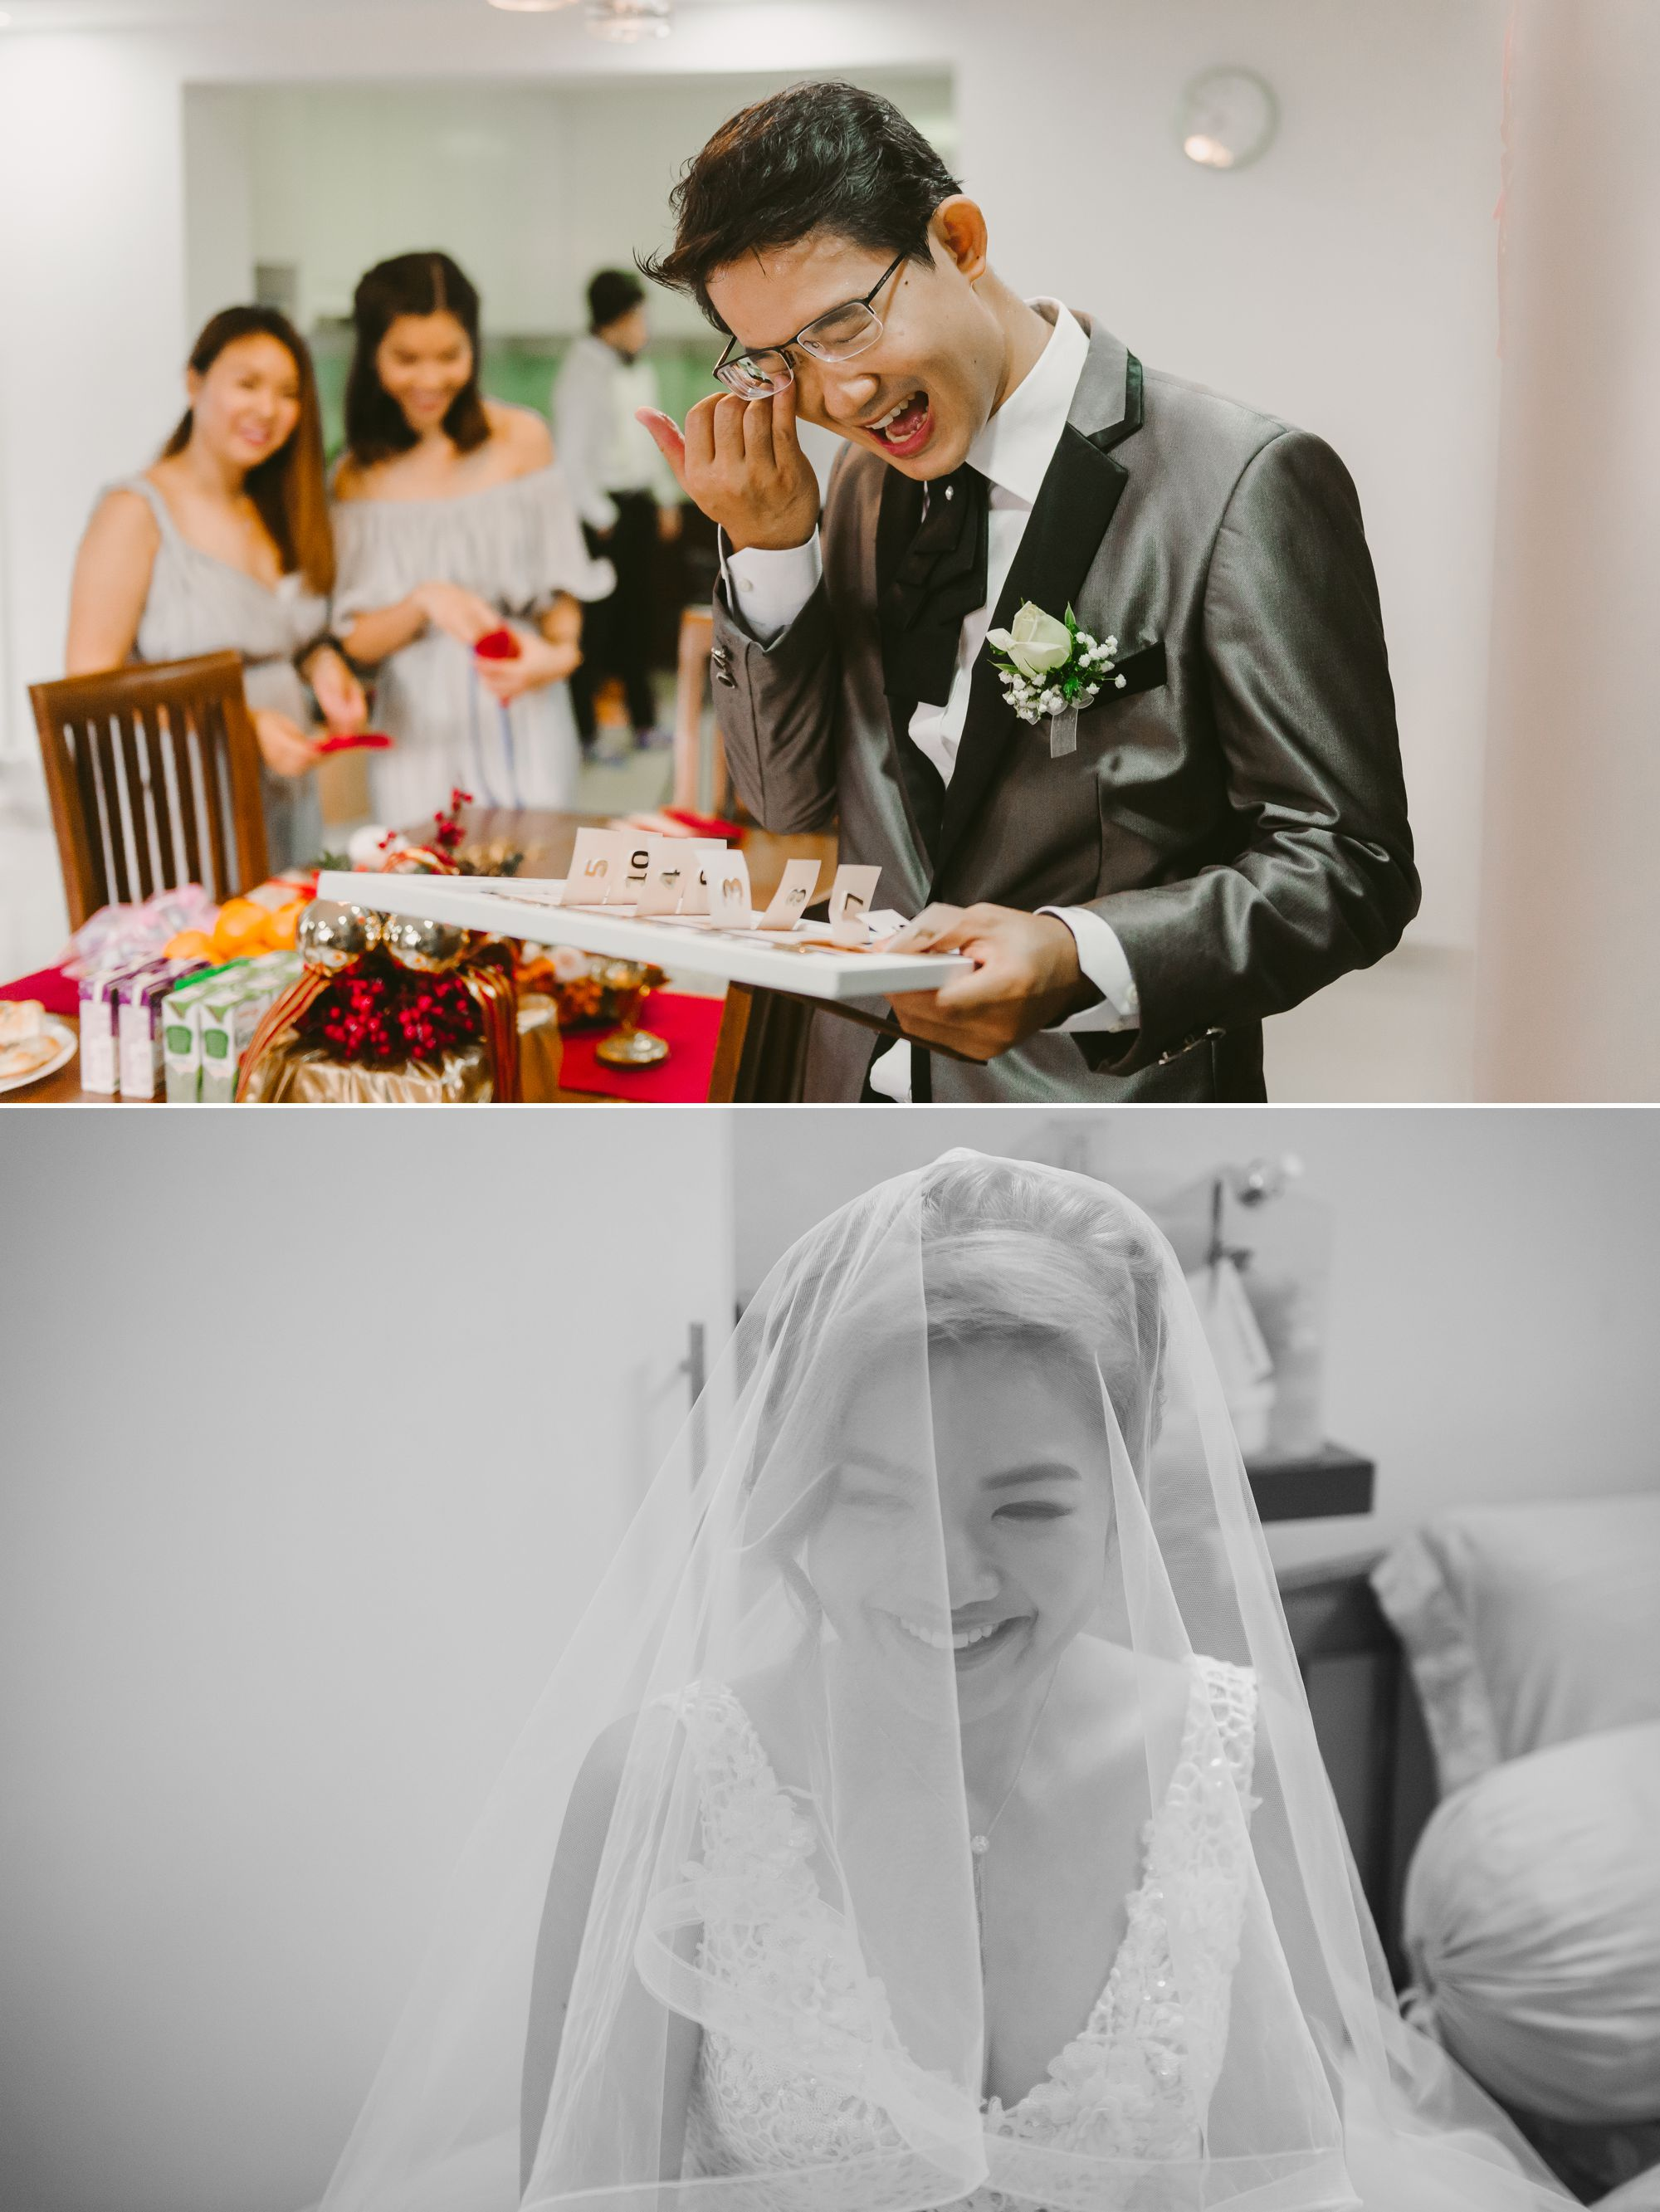 wedding_photographer_singapore 12.jpg